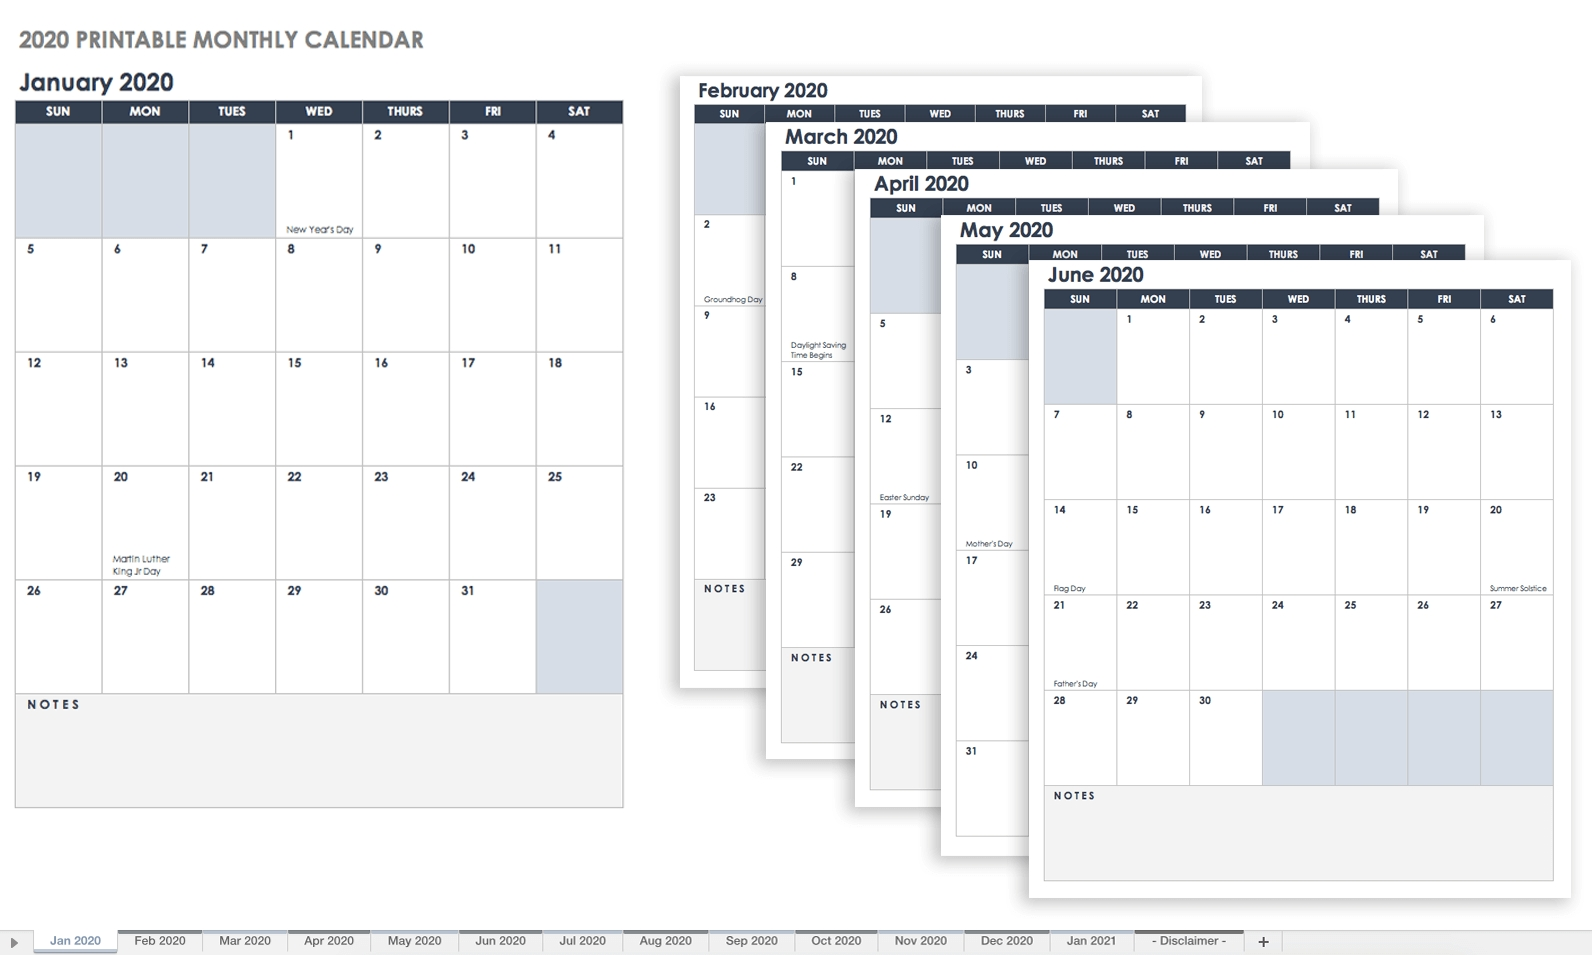 Free Blank Calendar Templates - Smartsheet pertaining to Free Printable Monthly Calendar With Lines